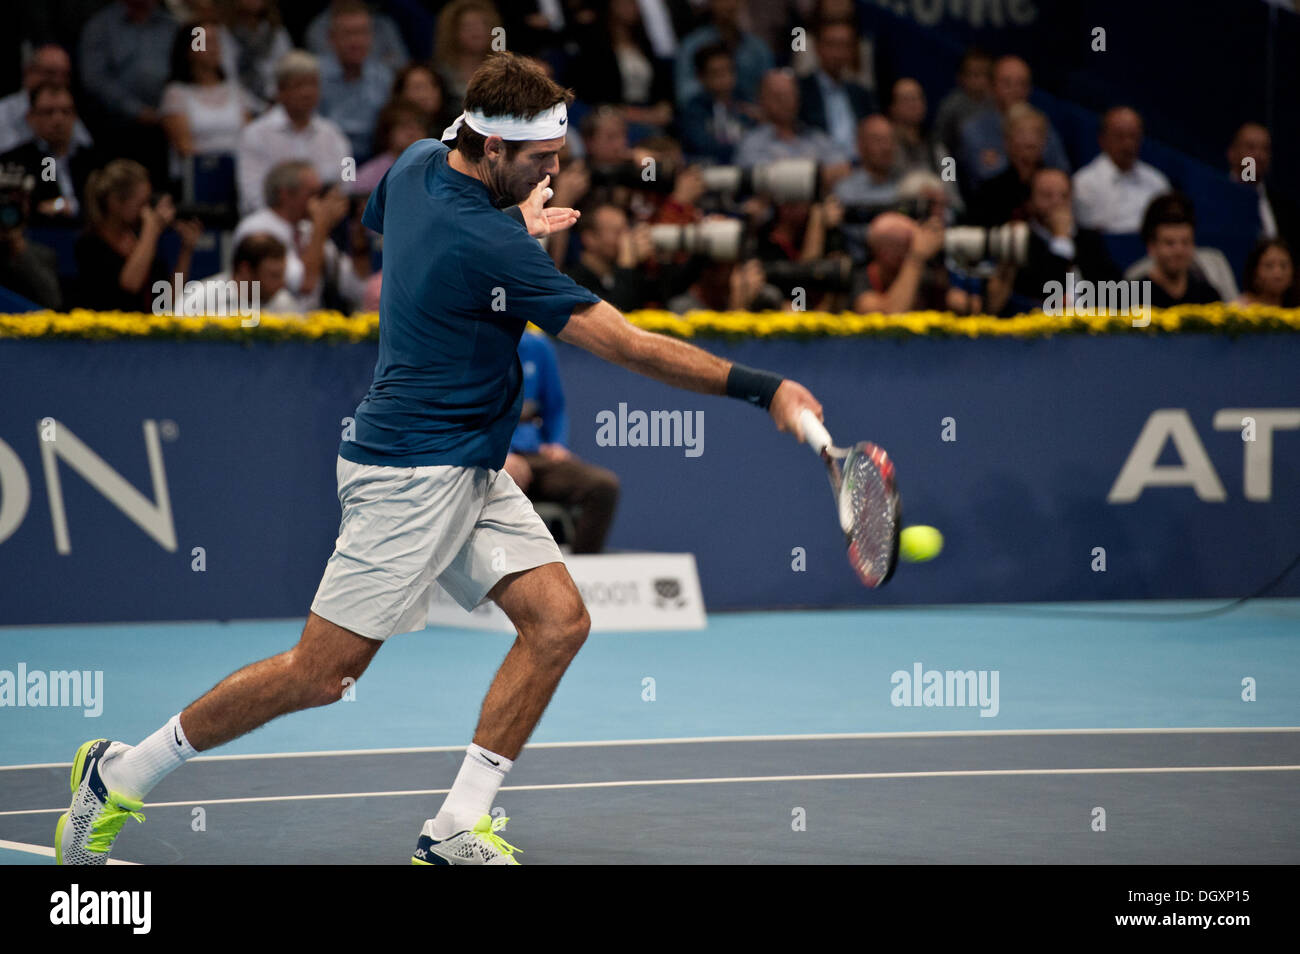 Basel, Switzerland. 27th Oct, 2013. J.M. Del Potro (ARG) hits a powerful forehand during the final of the Swiss Indoors at St. Jakobshalle on Sunday. Photo: Miroslav Dakov/ Alamy Live News - Stock Image